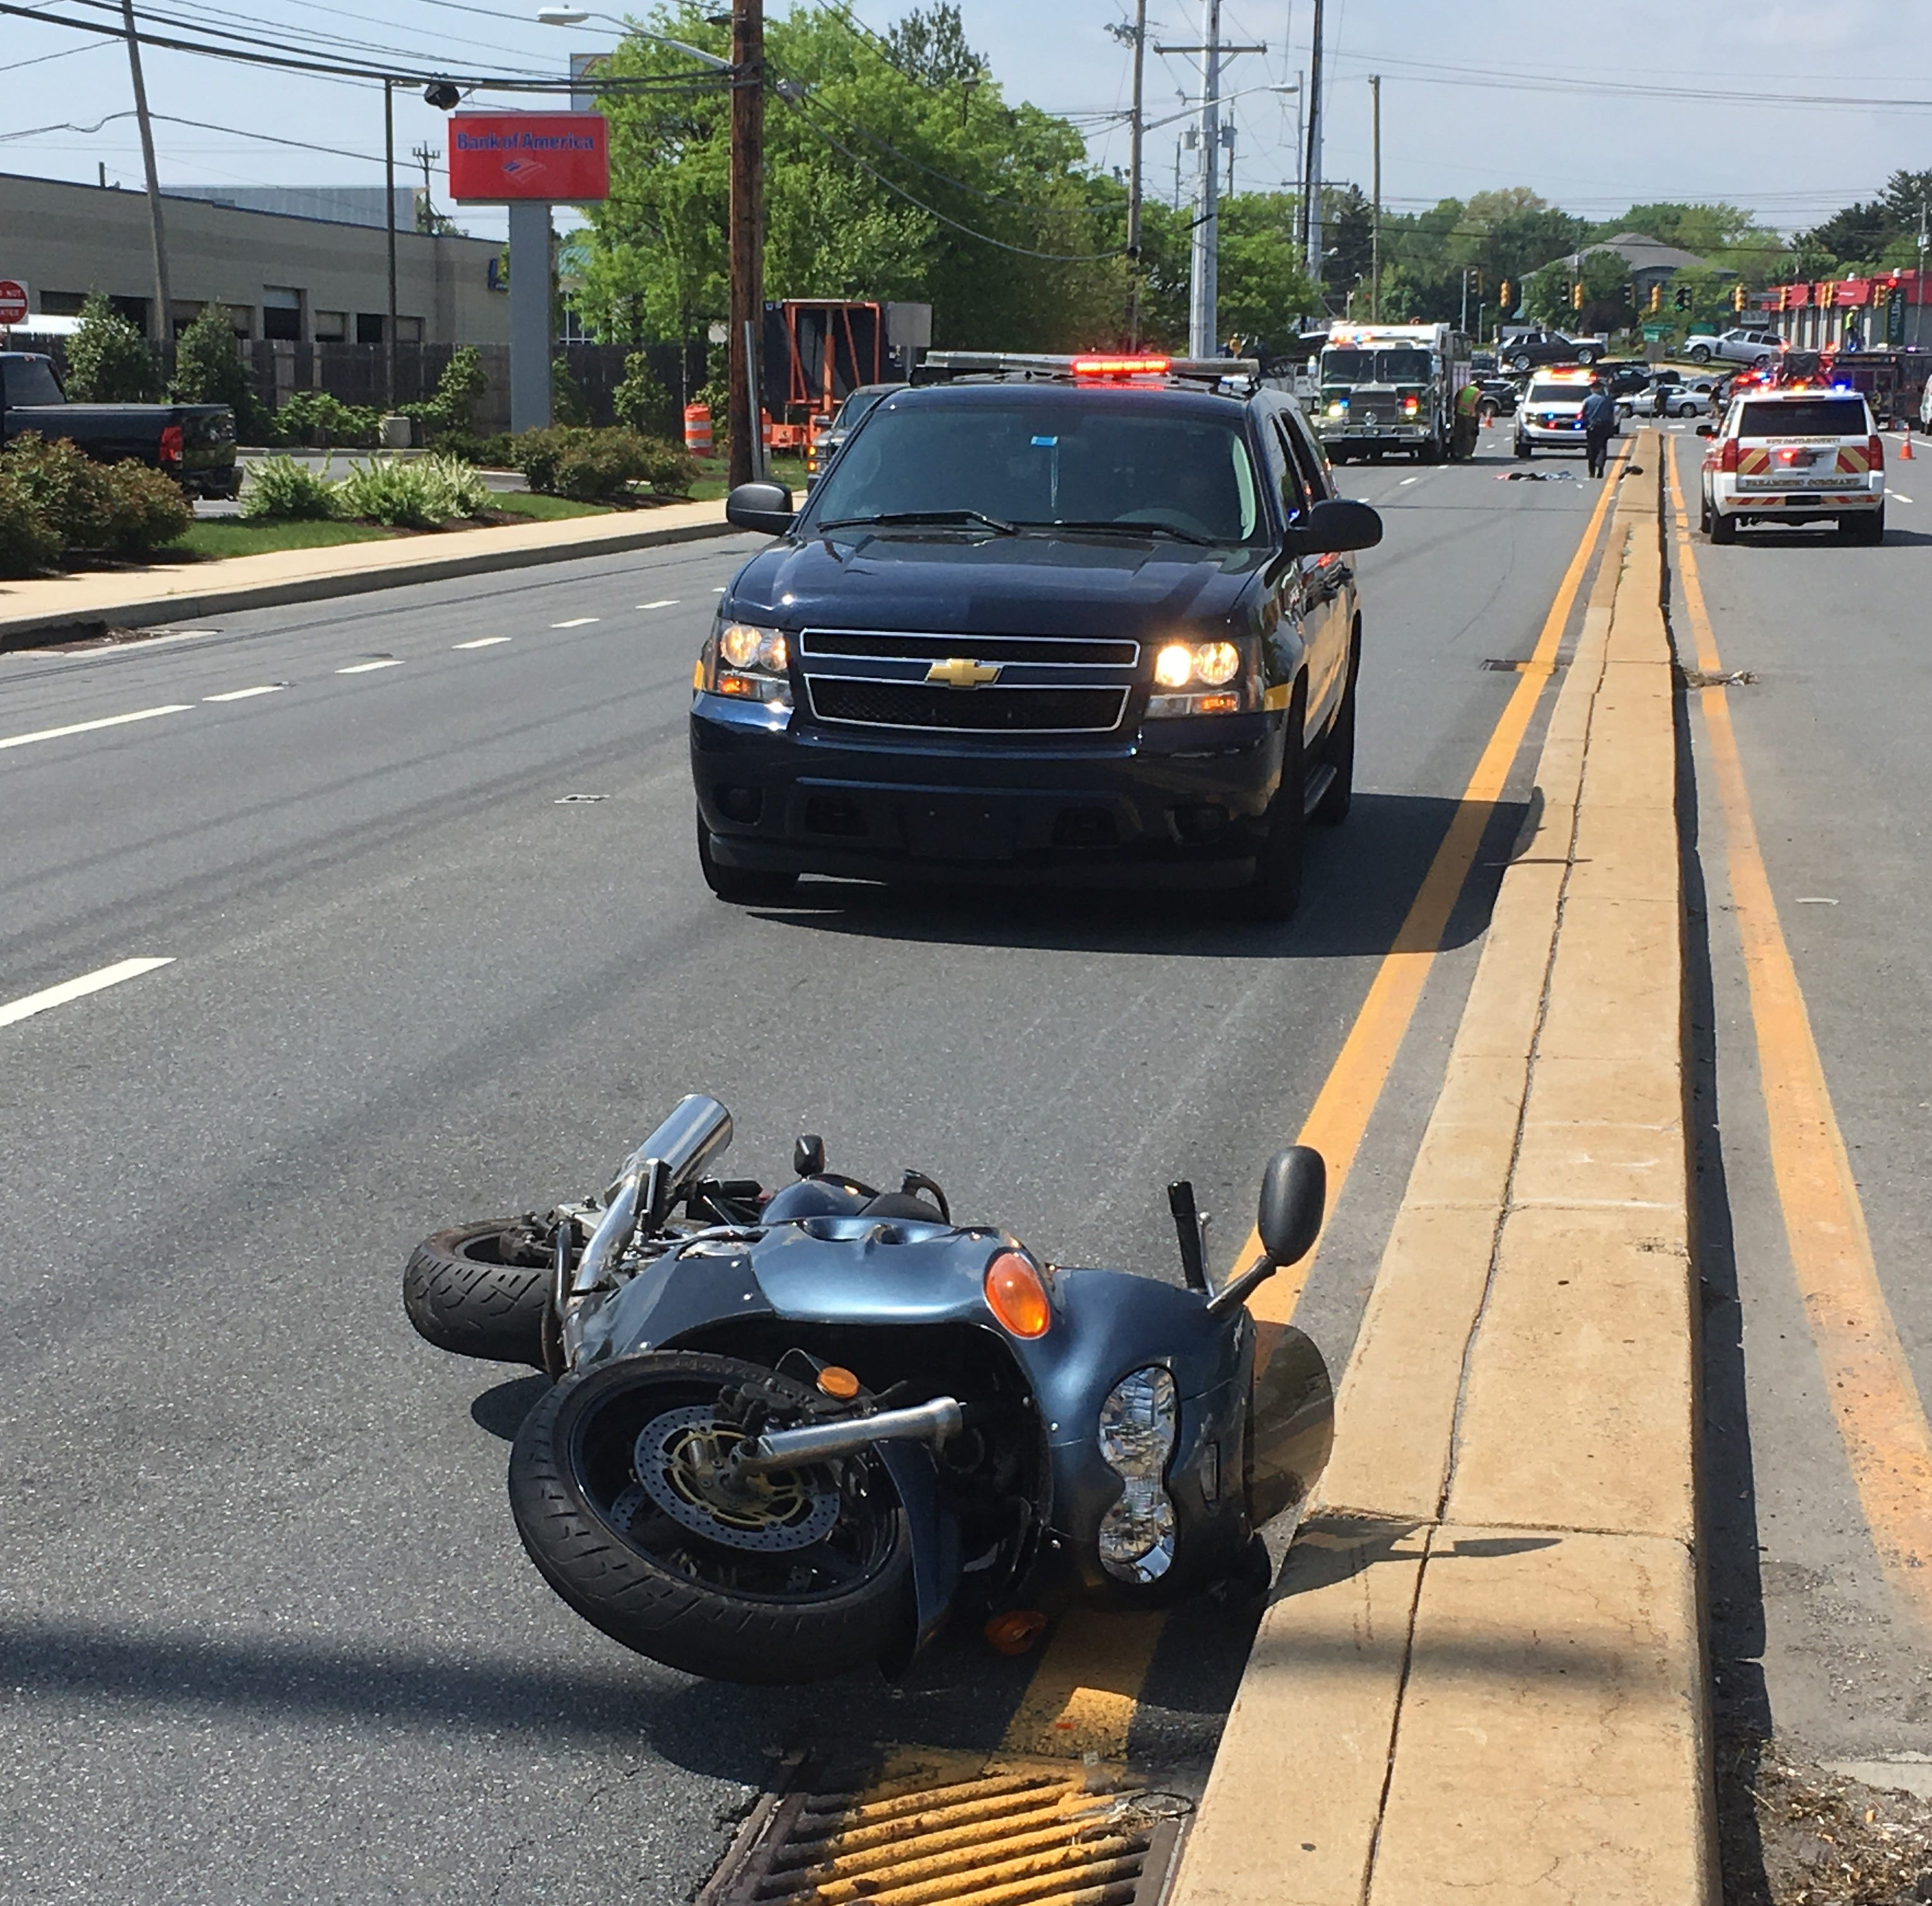 Motorcycle driver seriously injured in crash at Limestone, Kirkwood